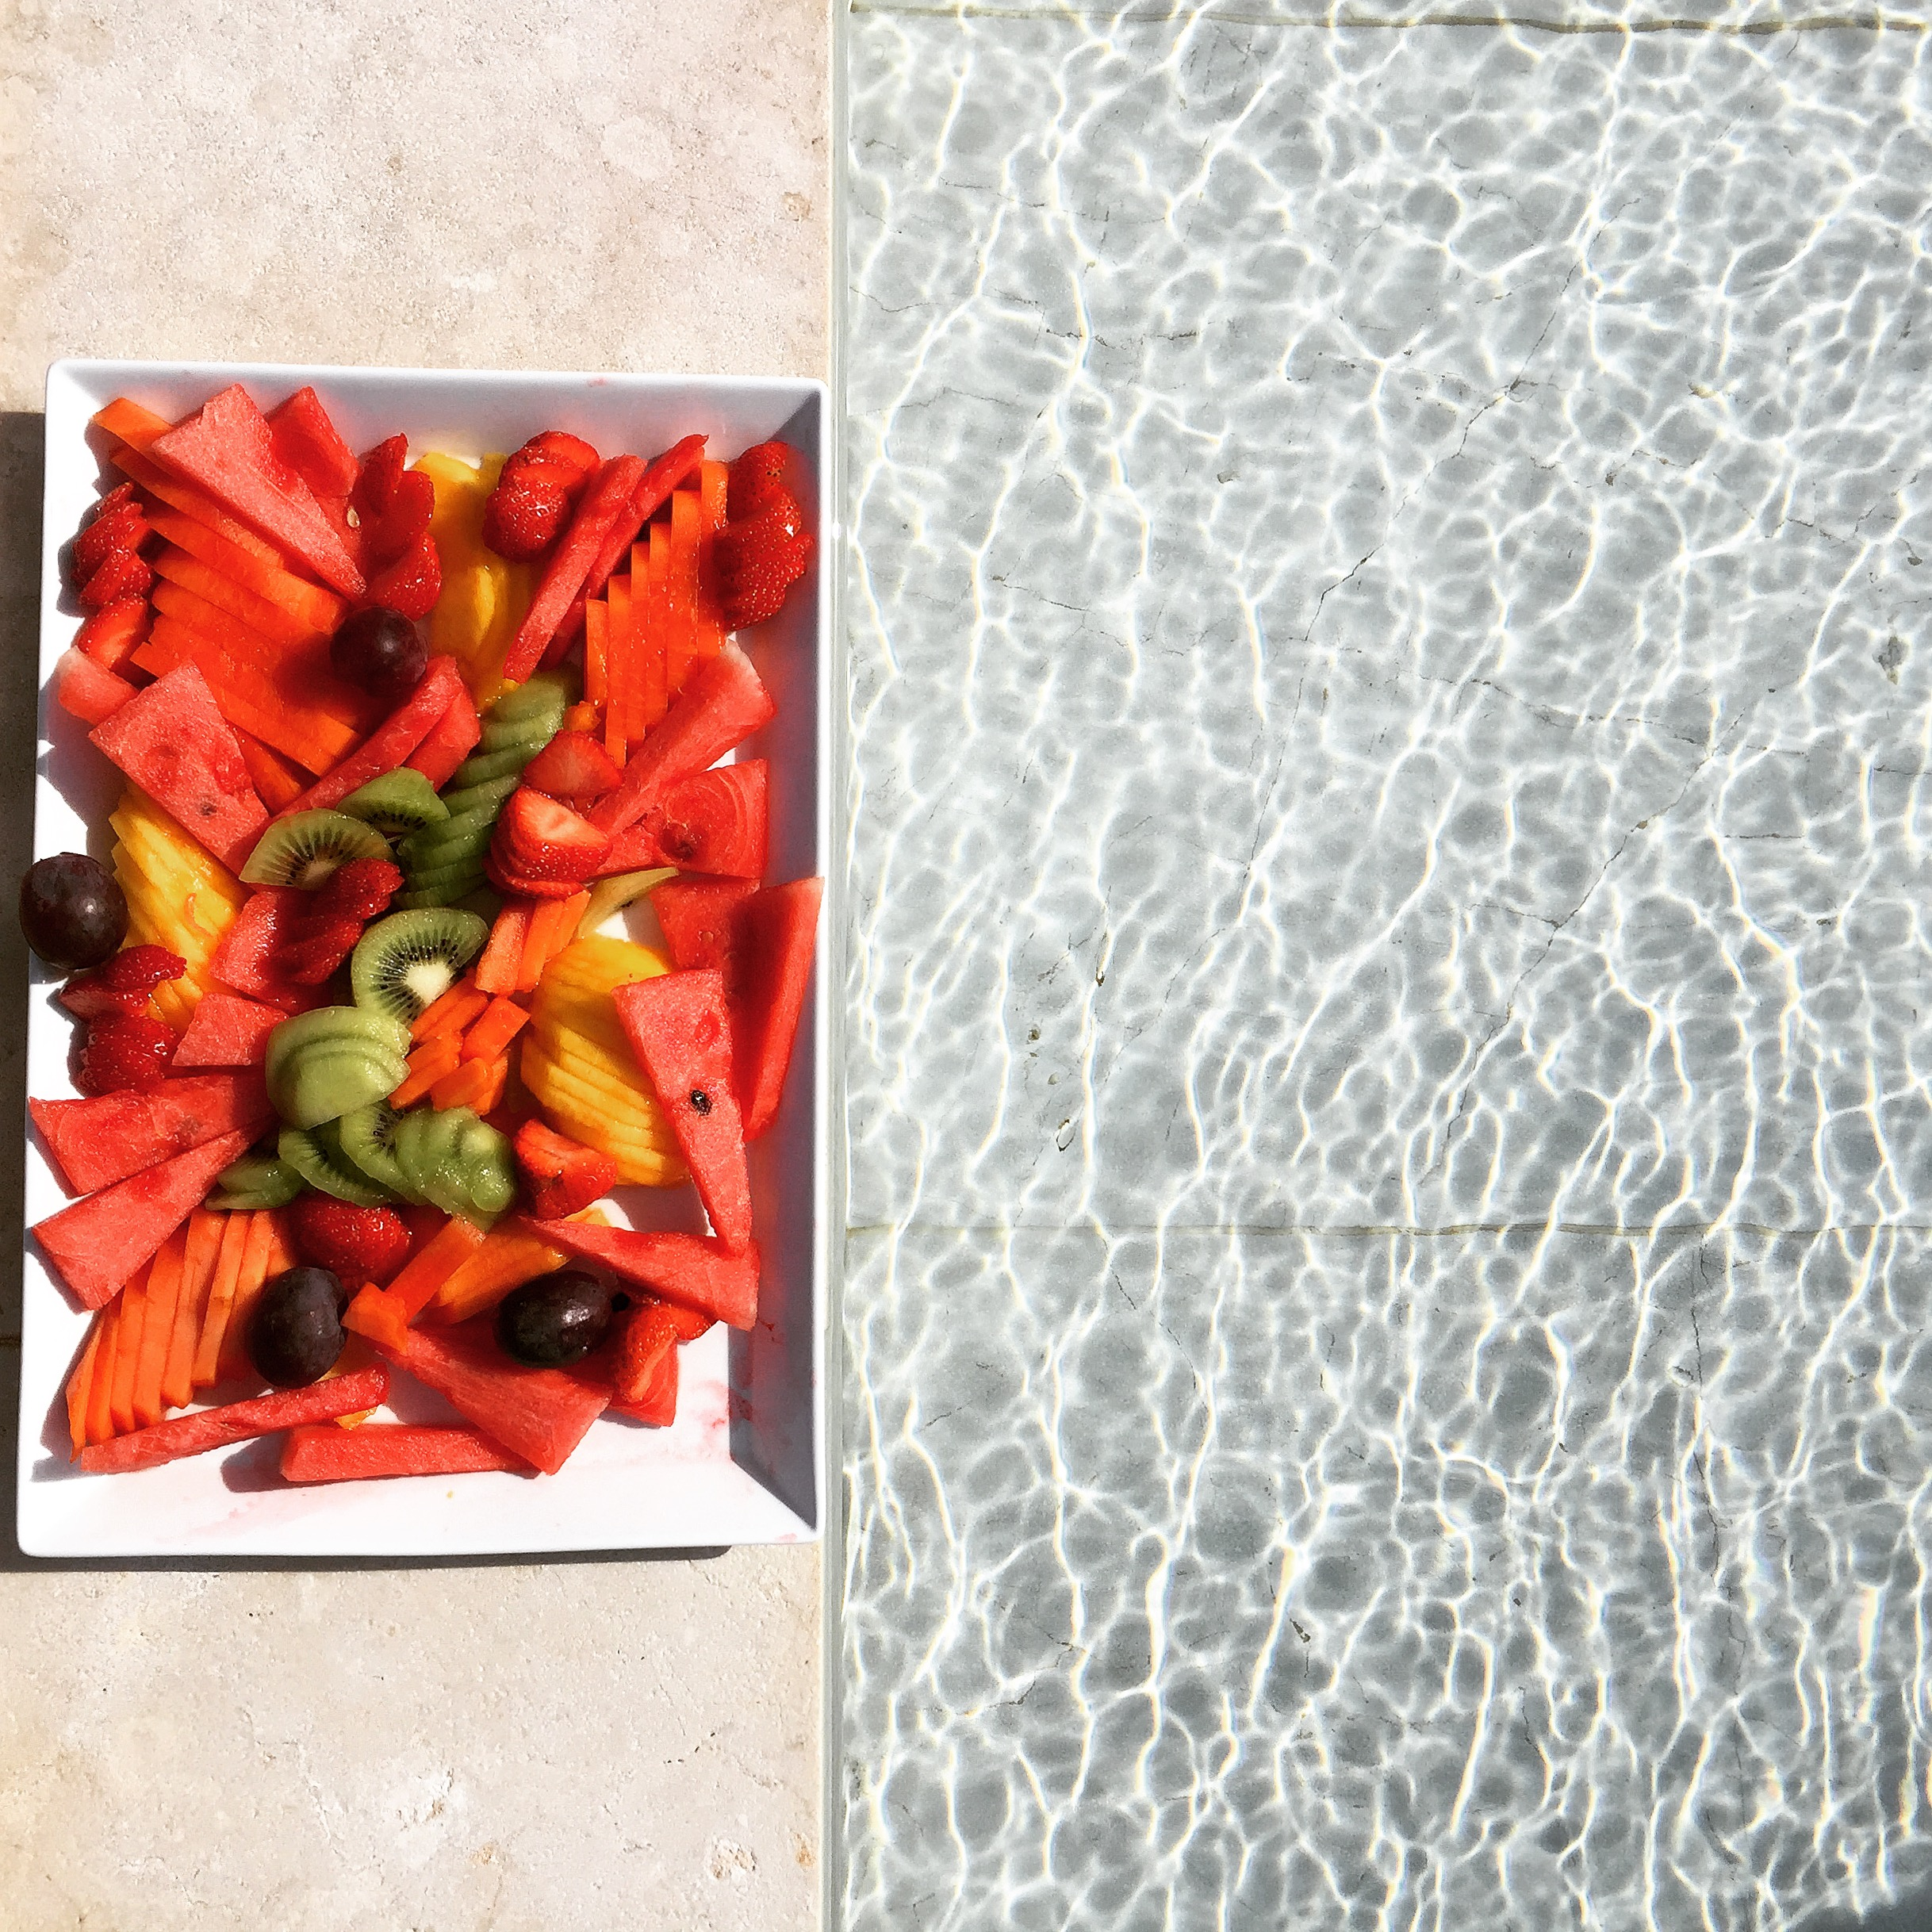 _ilcarritzi_formentera_ibiza_mediterraneo_lifestyle_fruit_swimming_pool_